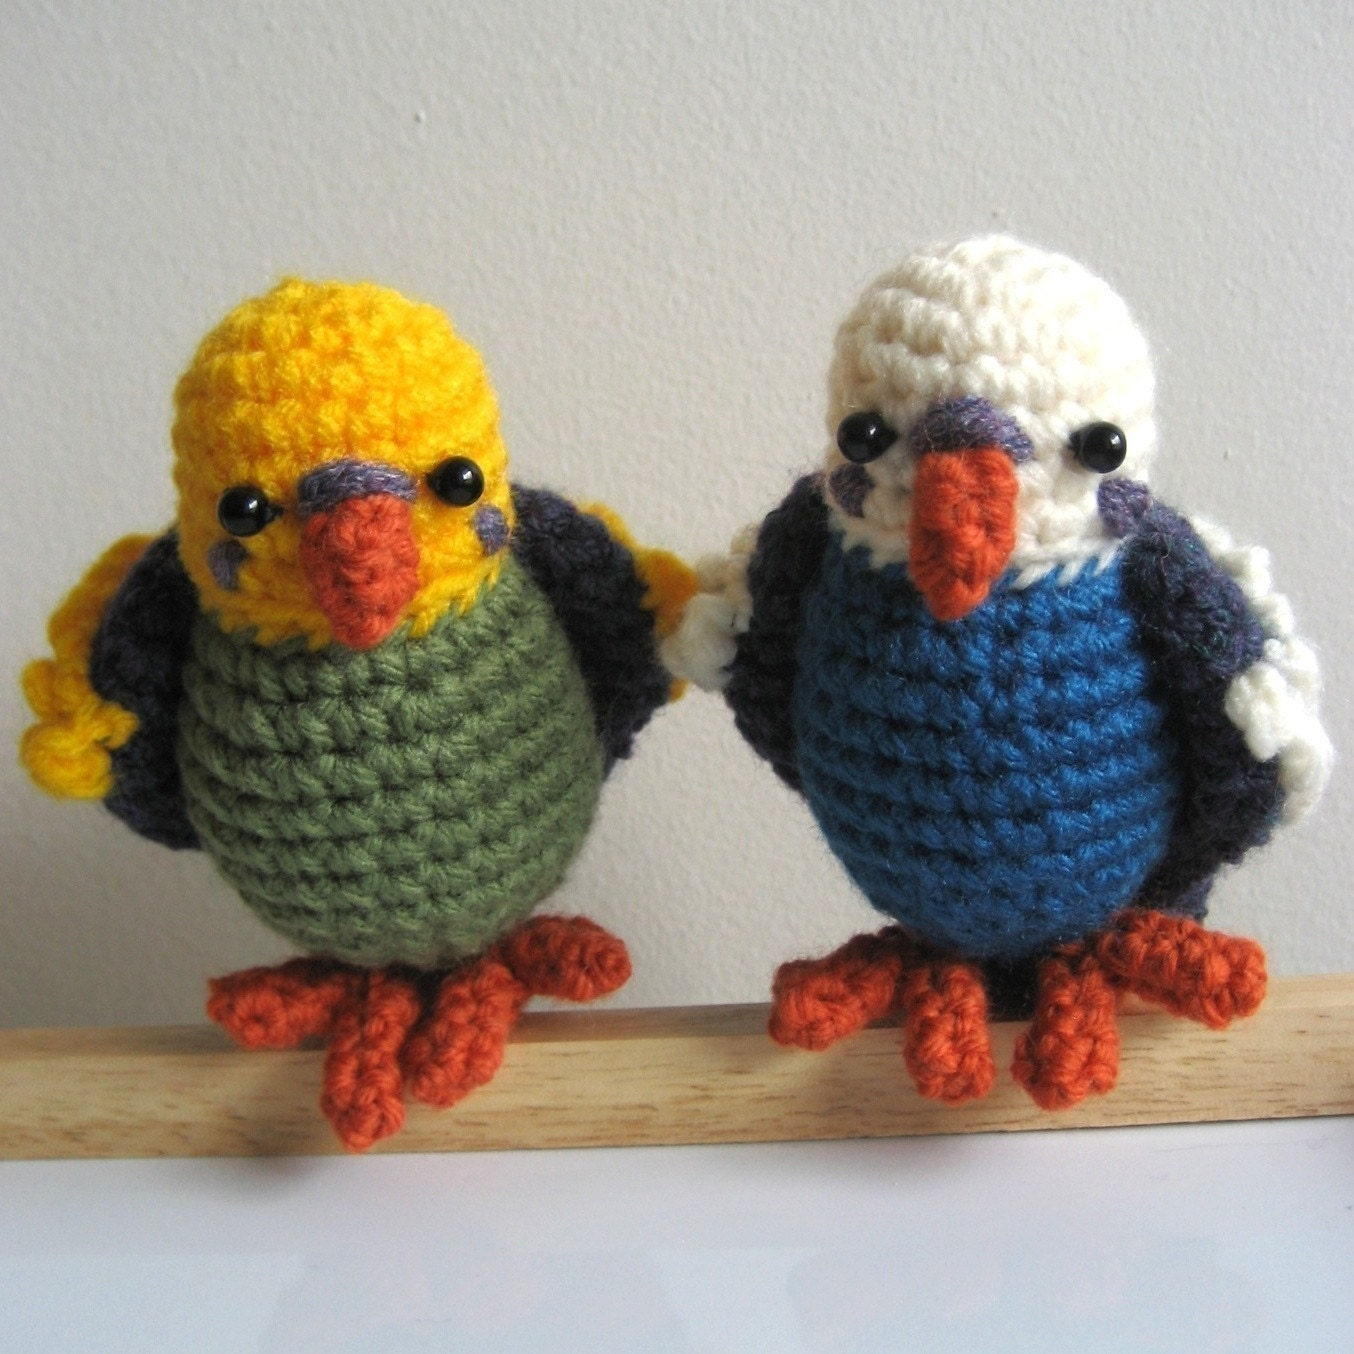 Amigurumi Askina Etsy : Amigurumi Crochet Budgie Pattern by MsPremiseConclusion on ...